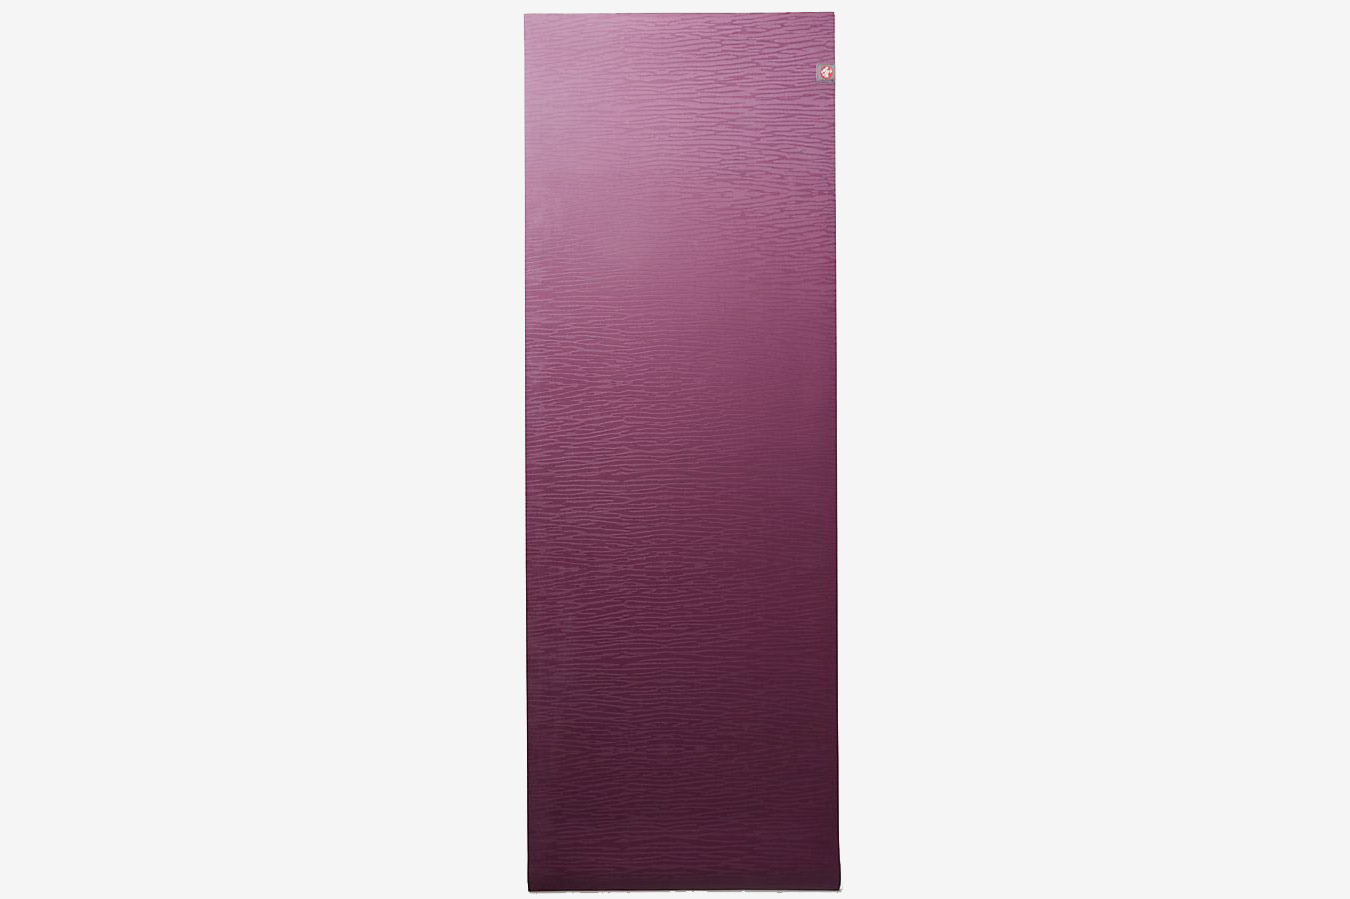 Manduka Ekolite Travel Yoga Mat